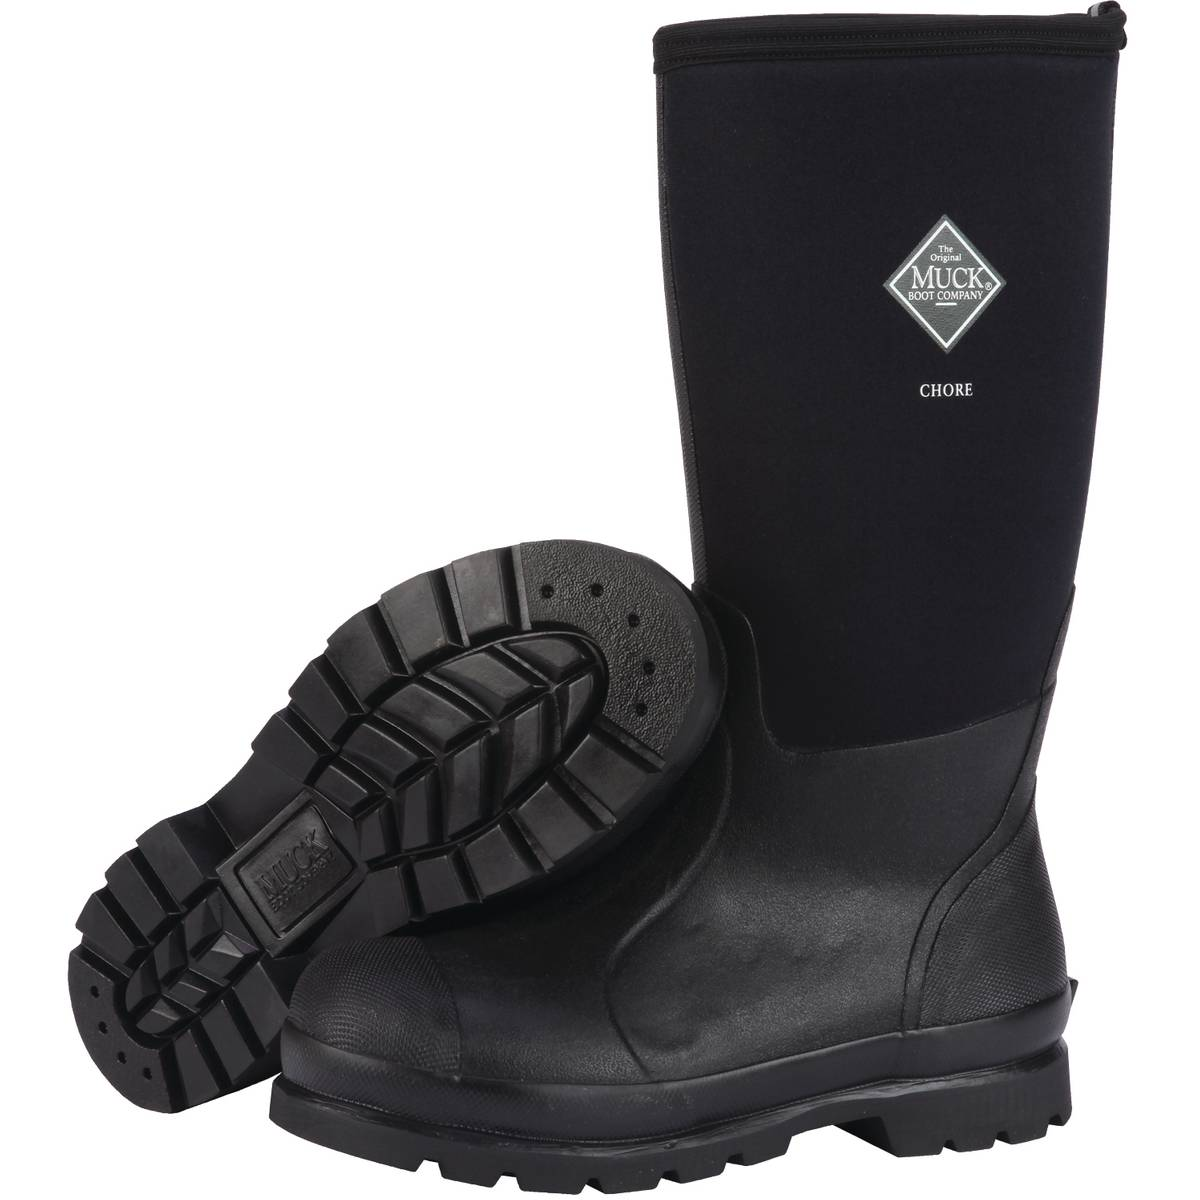 Bathroom scales boots - The Original Muck Boot Company Men 39 S Hi Chore Waterproof Insulated Rubber Work